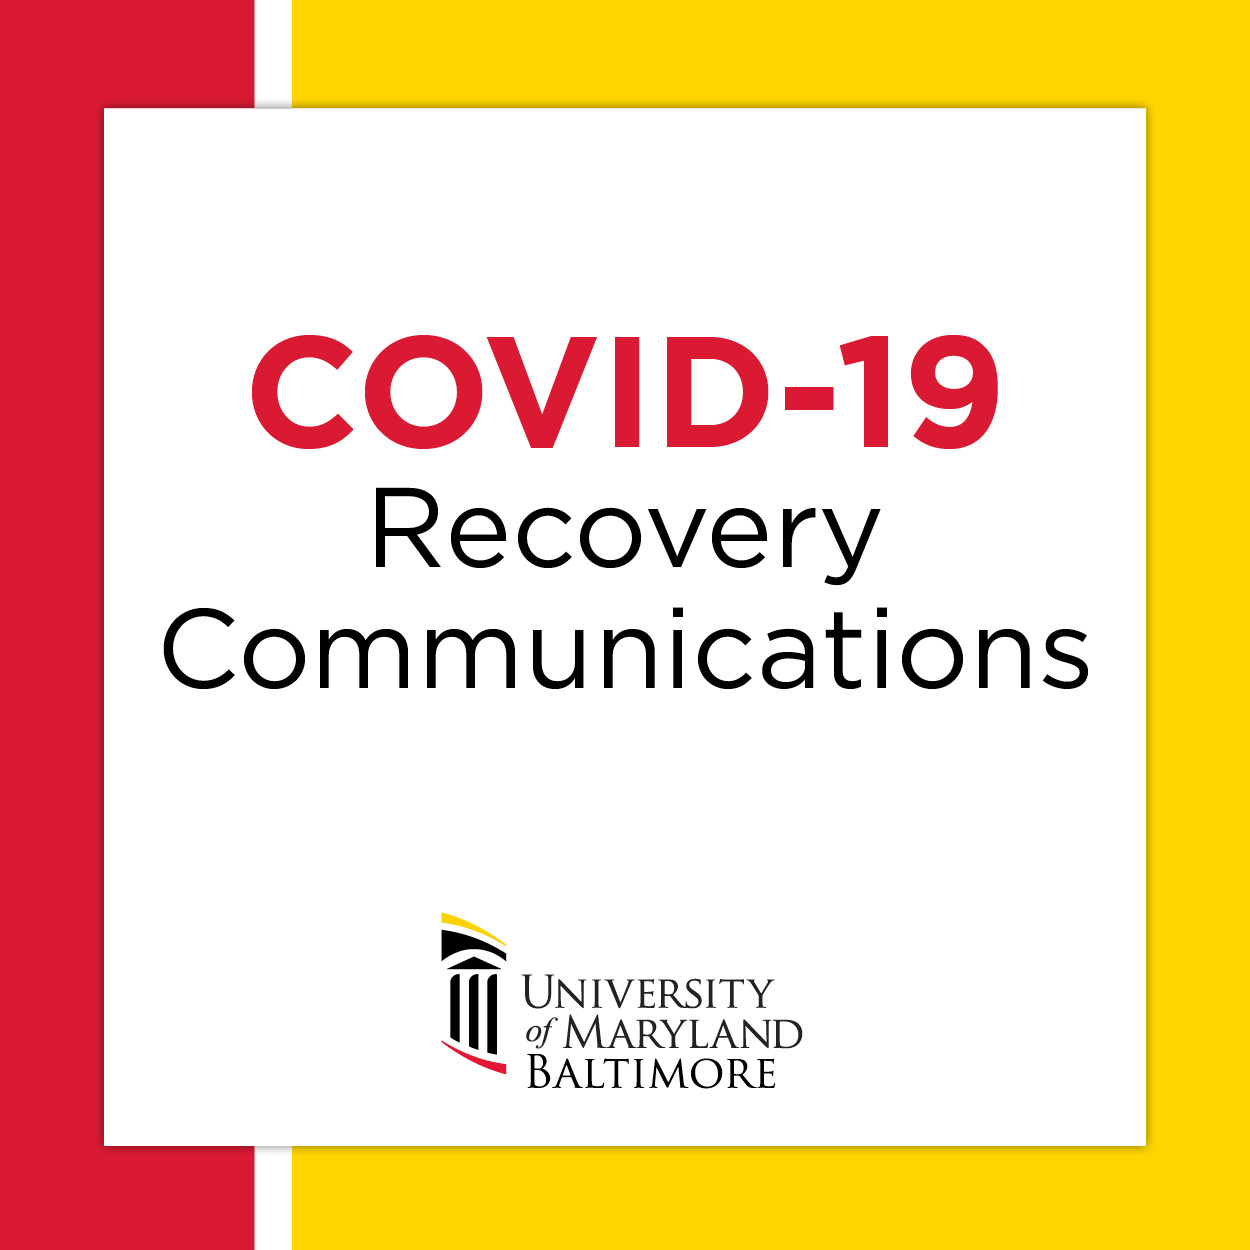 COVID-19 Recovery Communications